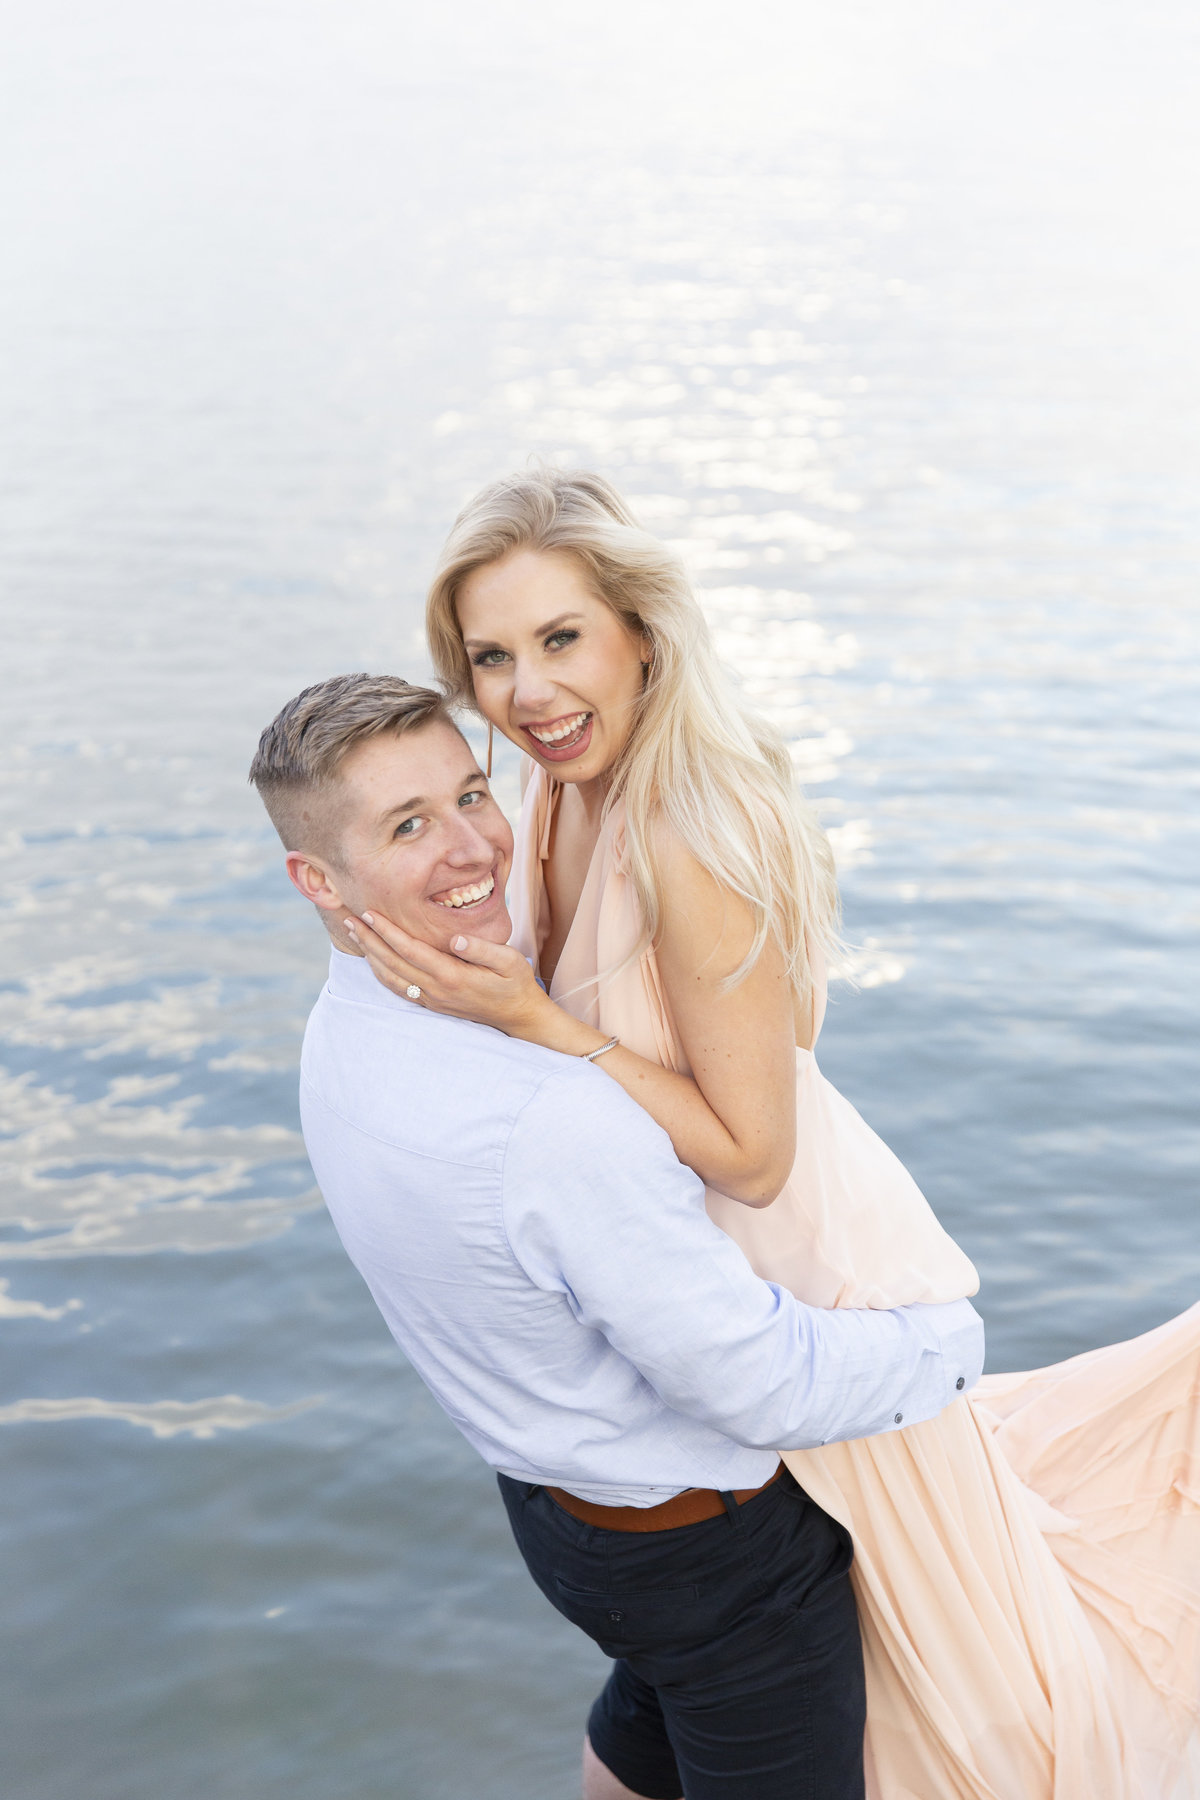 Randi Michelle Photography_ Engagement Session_Becca White_Dallas-108